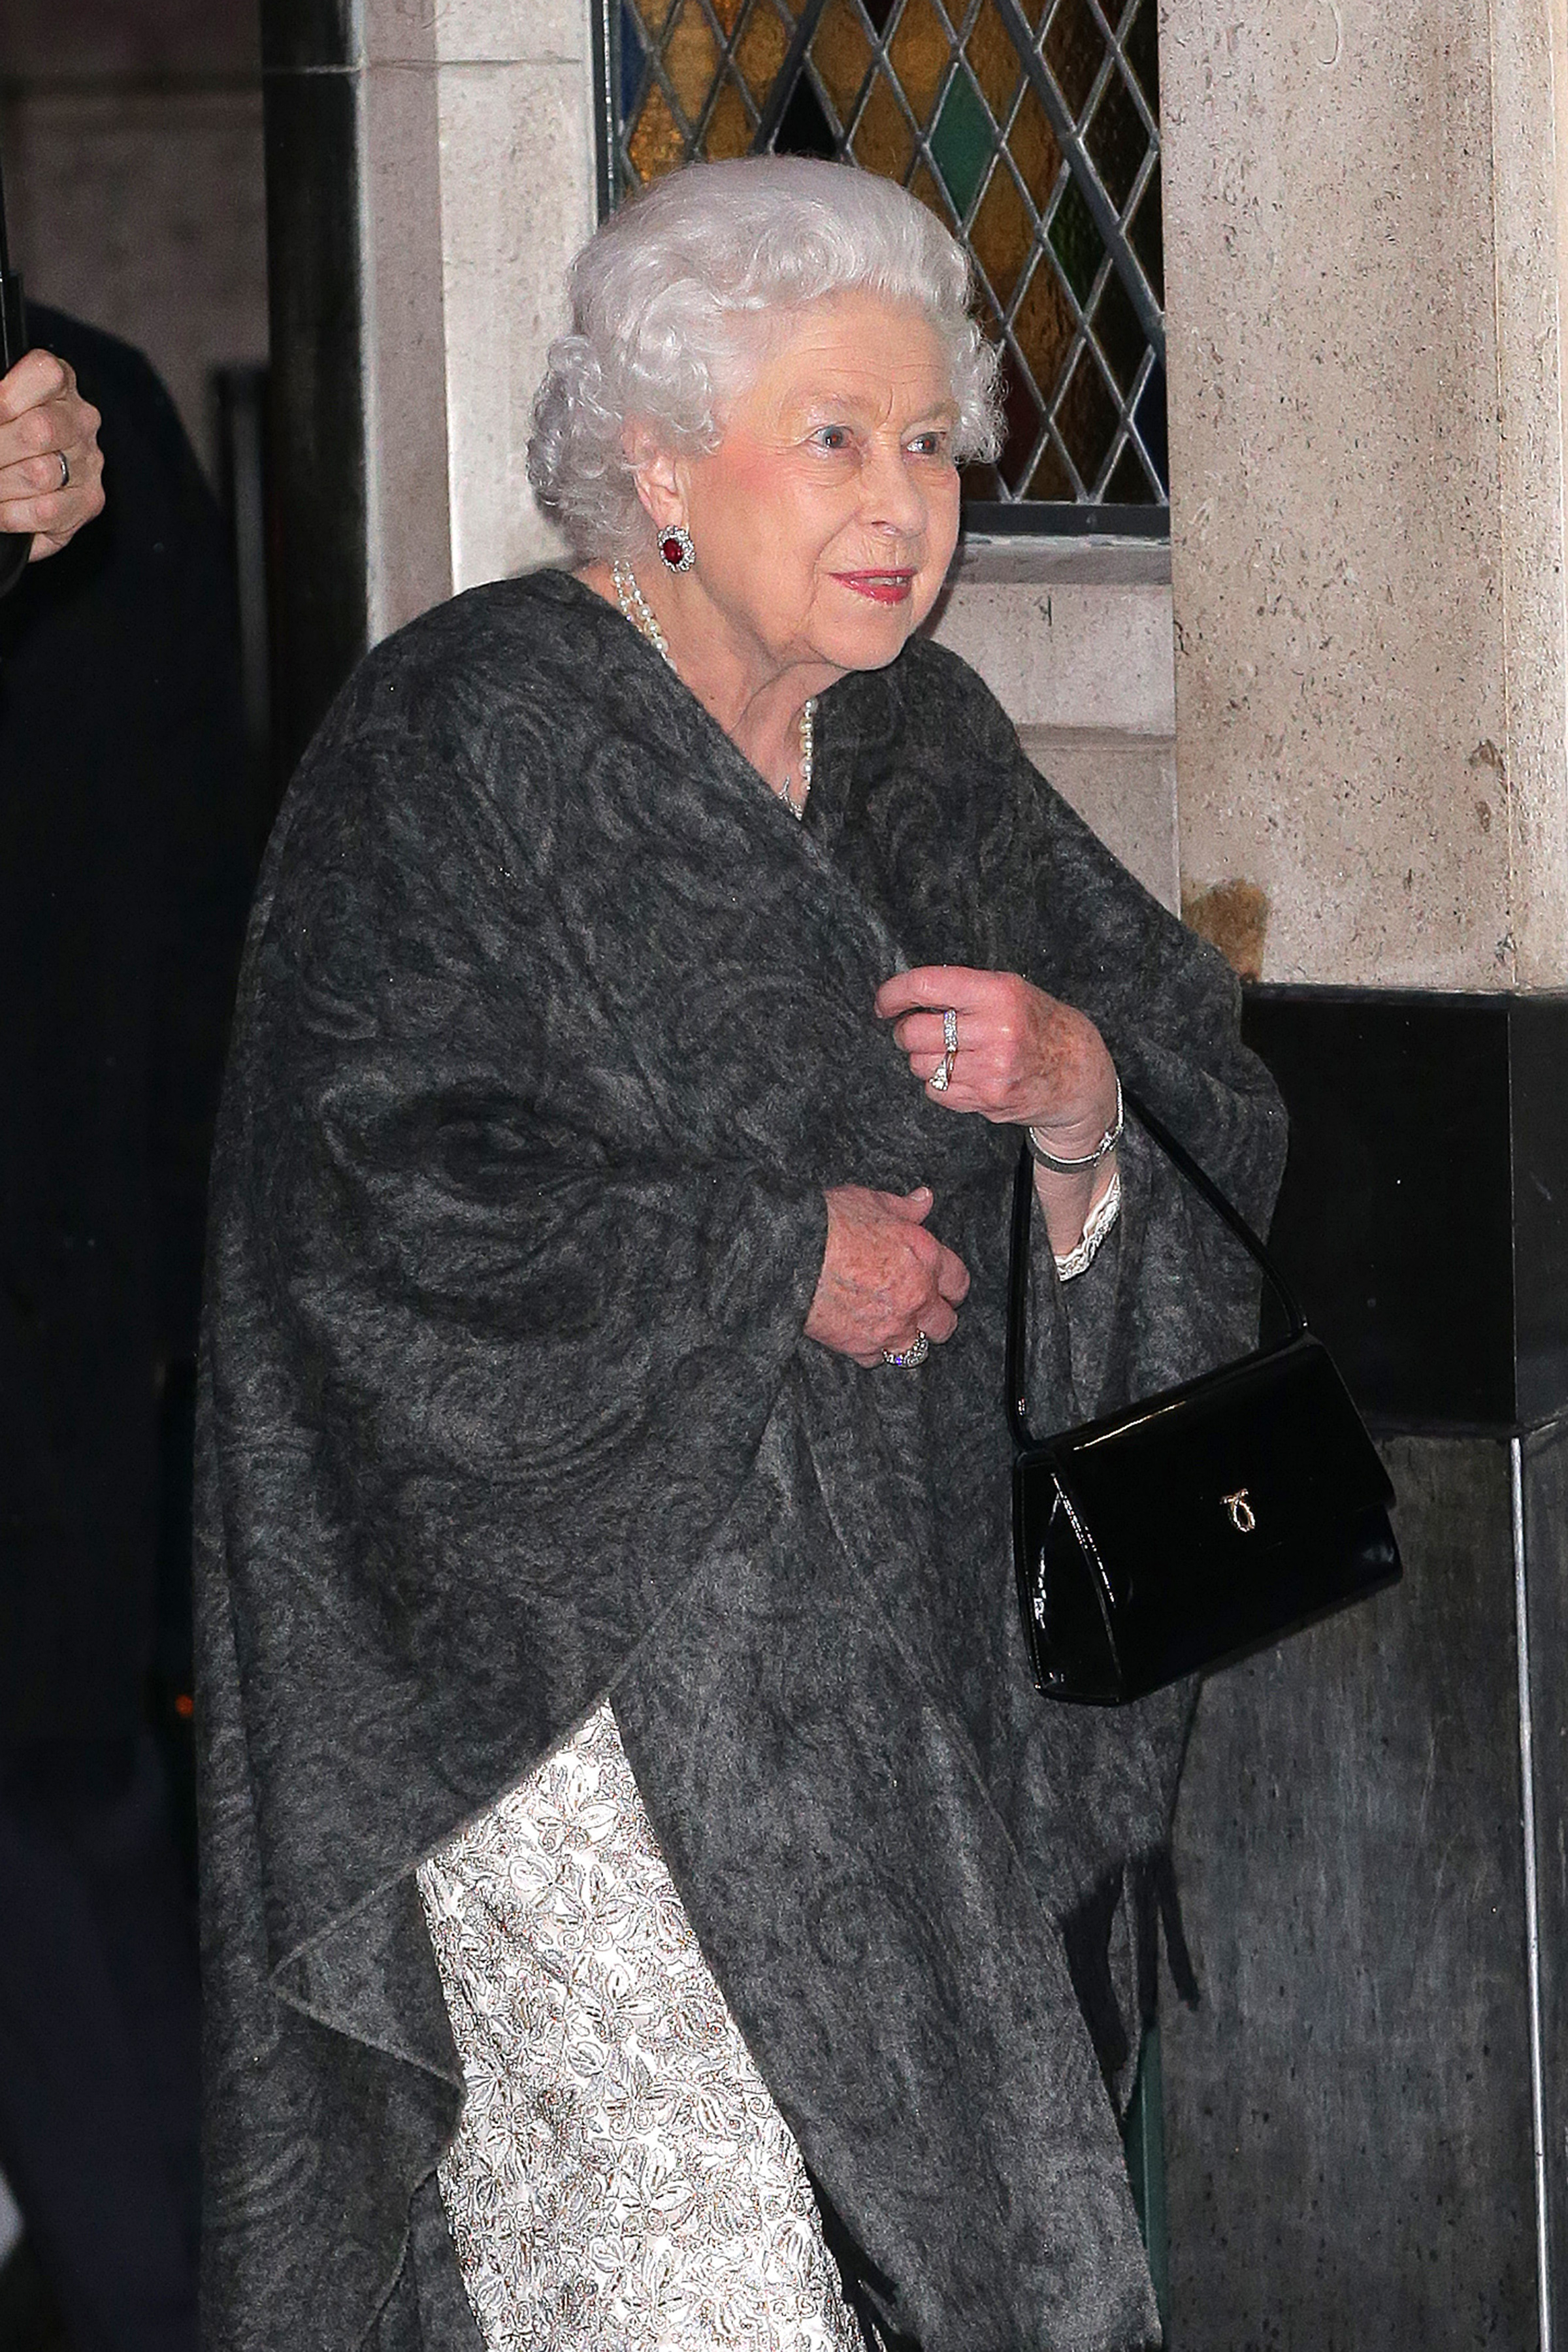 Queen Elizabeth The Ivy Smiling